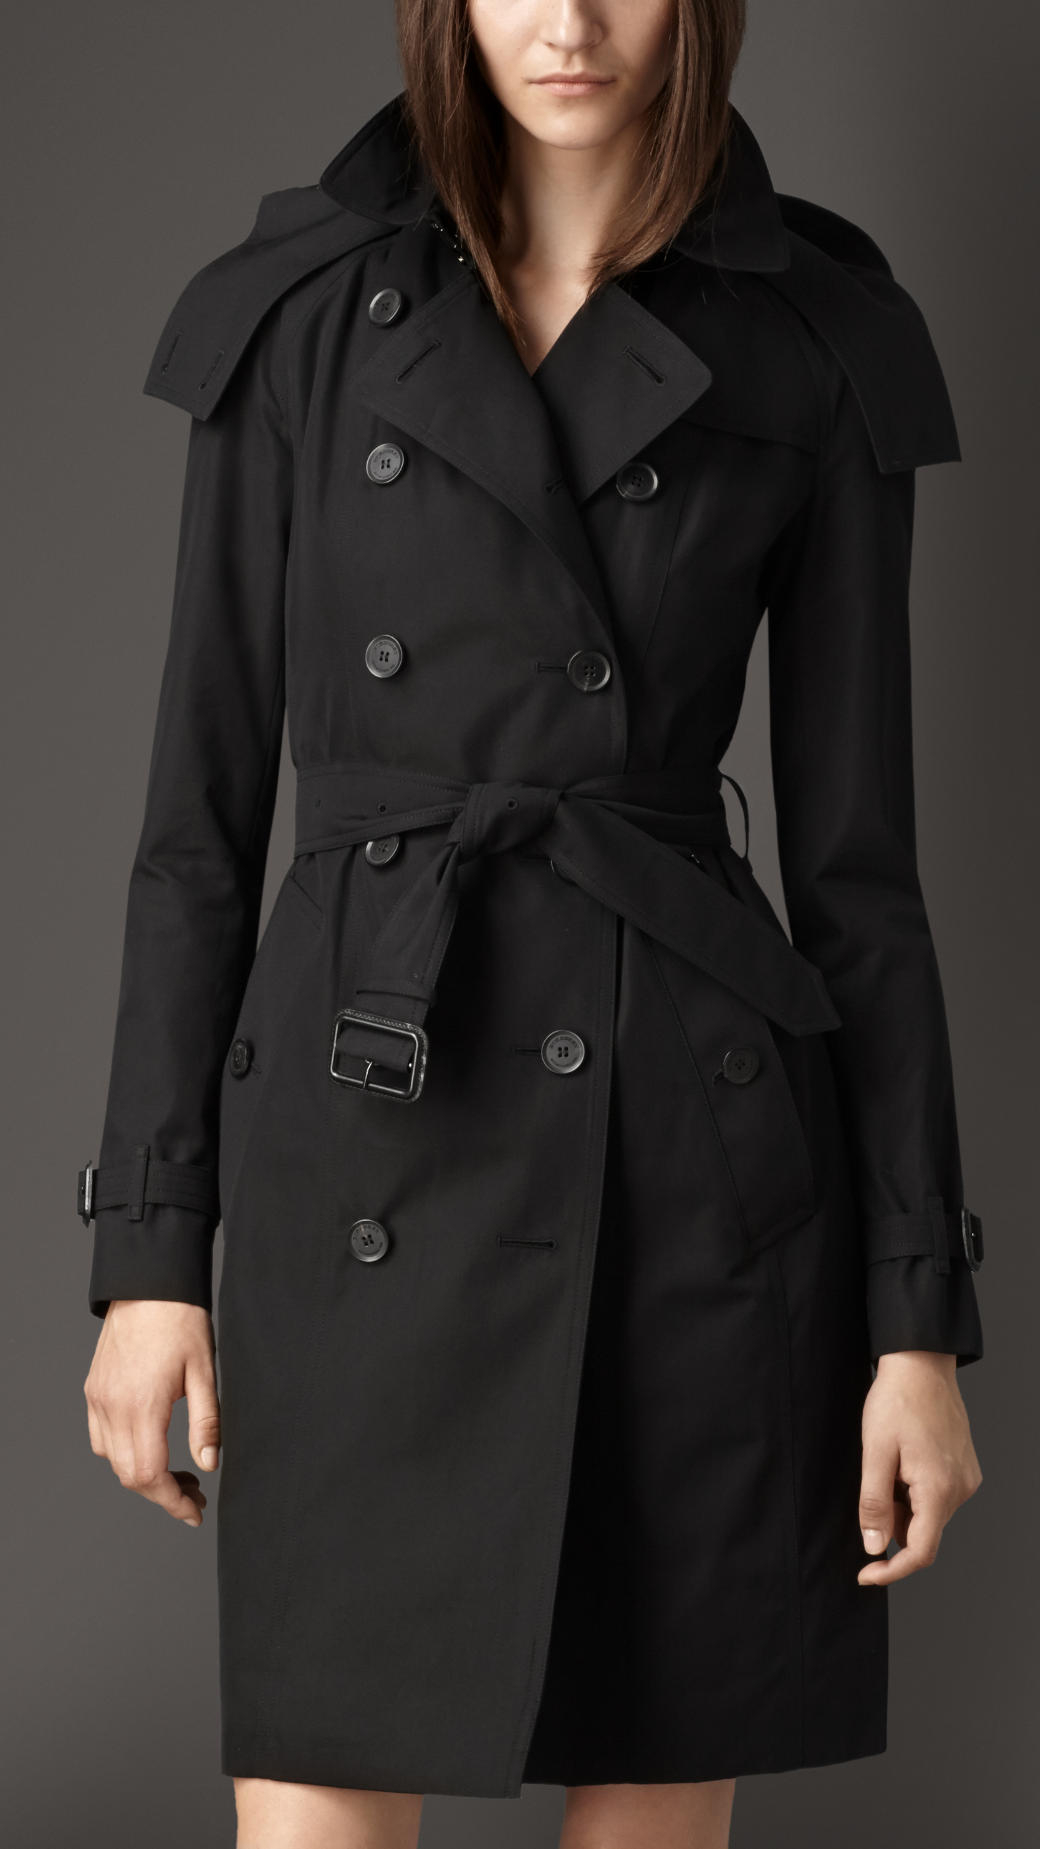 Burberry Väska 2014 : Lyst burberry long gabardine hooded trench coat with